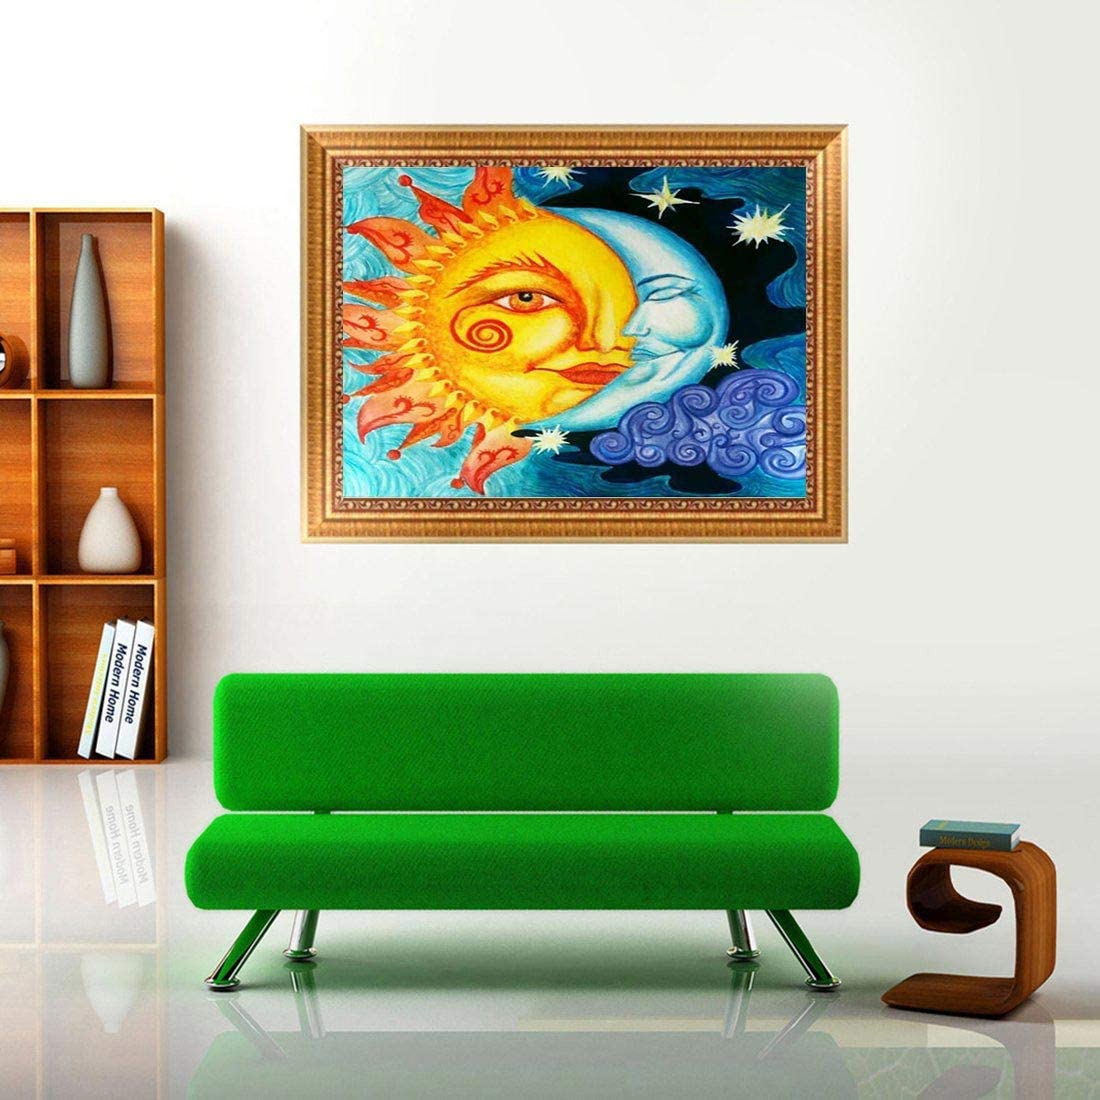 Diamond Painting Accessories Sun and Moon 5D Diamond Art Full Drill DIY Art Cross Stitch Set Embroidery Mosaic For Home Decor With Tools Accessories Family Ornaments 30 x 30 cm